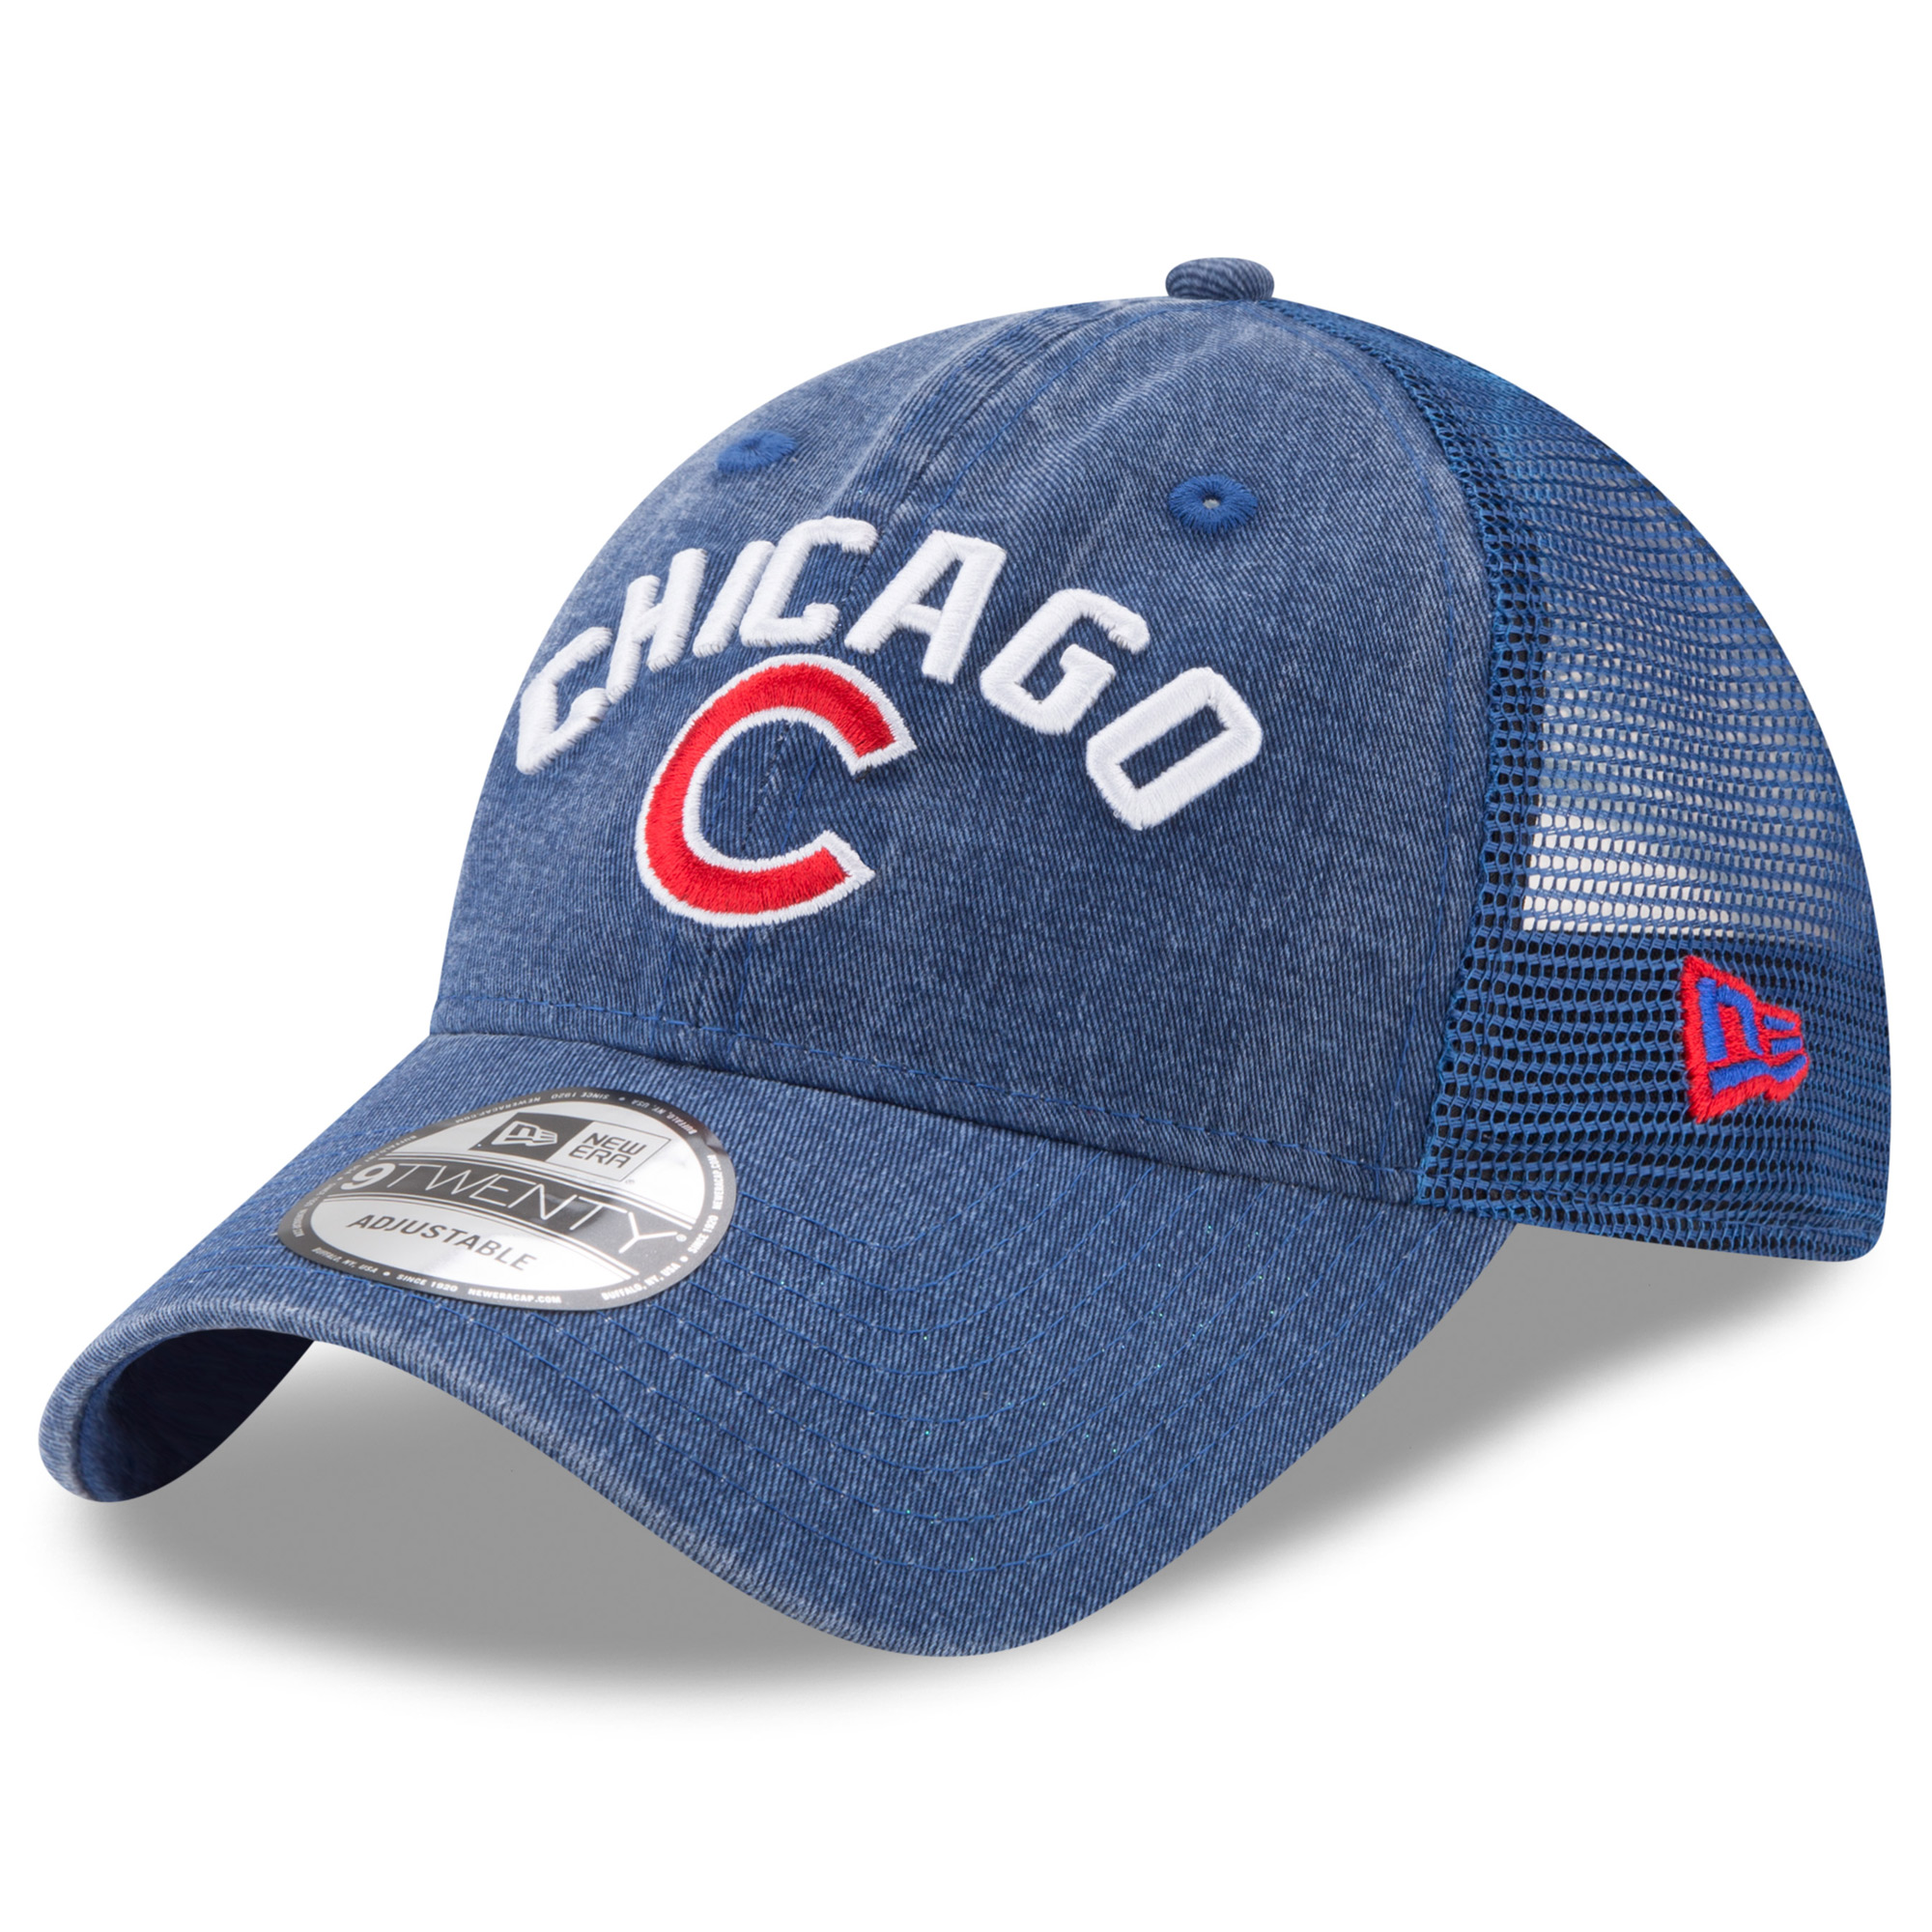 Men's New Era Royal Chicago Cubs Rugged Team 9TWENTY Snapback Adjustable Hat - OSFA